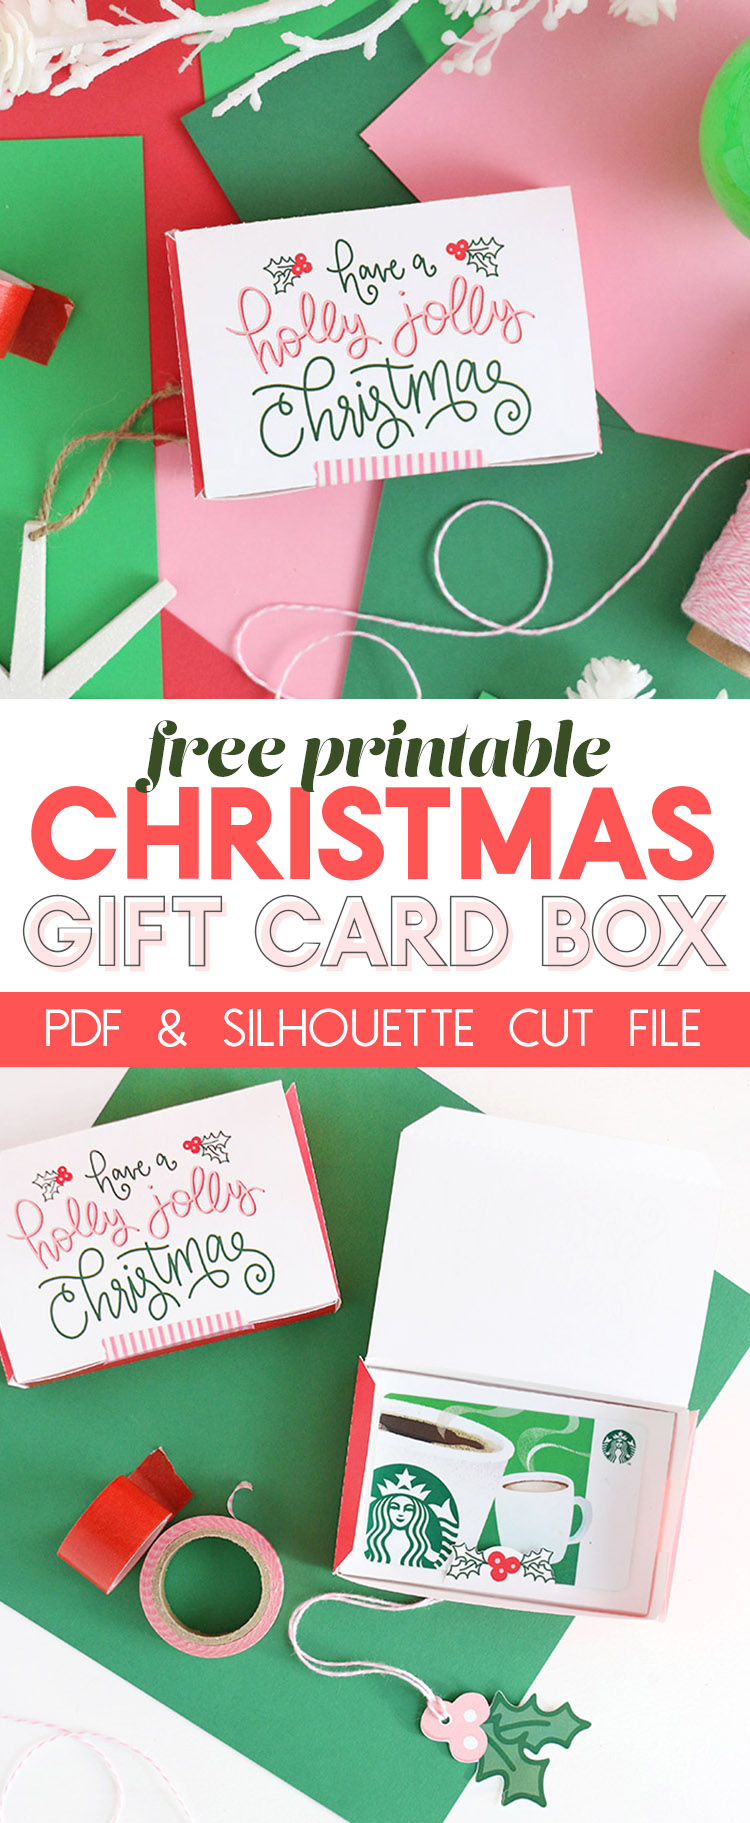 make a DIY gift card box with this free printable - perfect for Christmas gifts